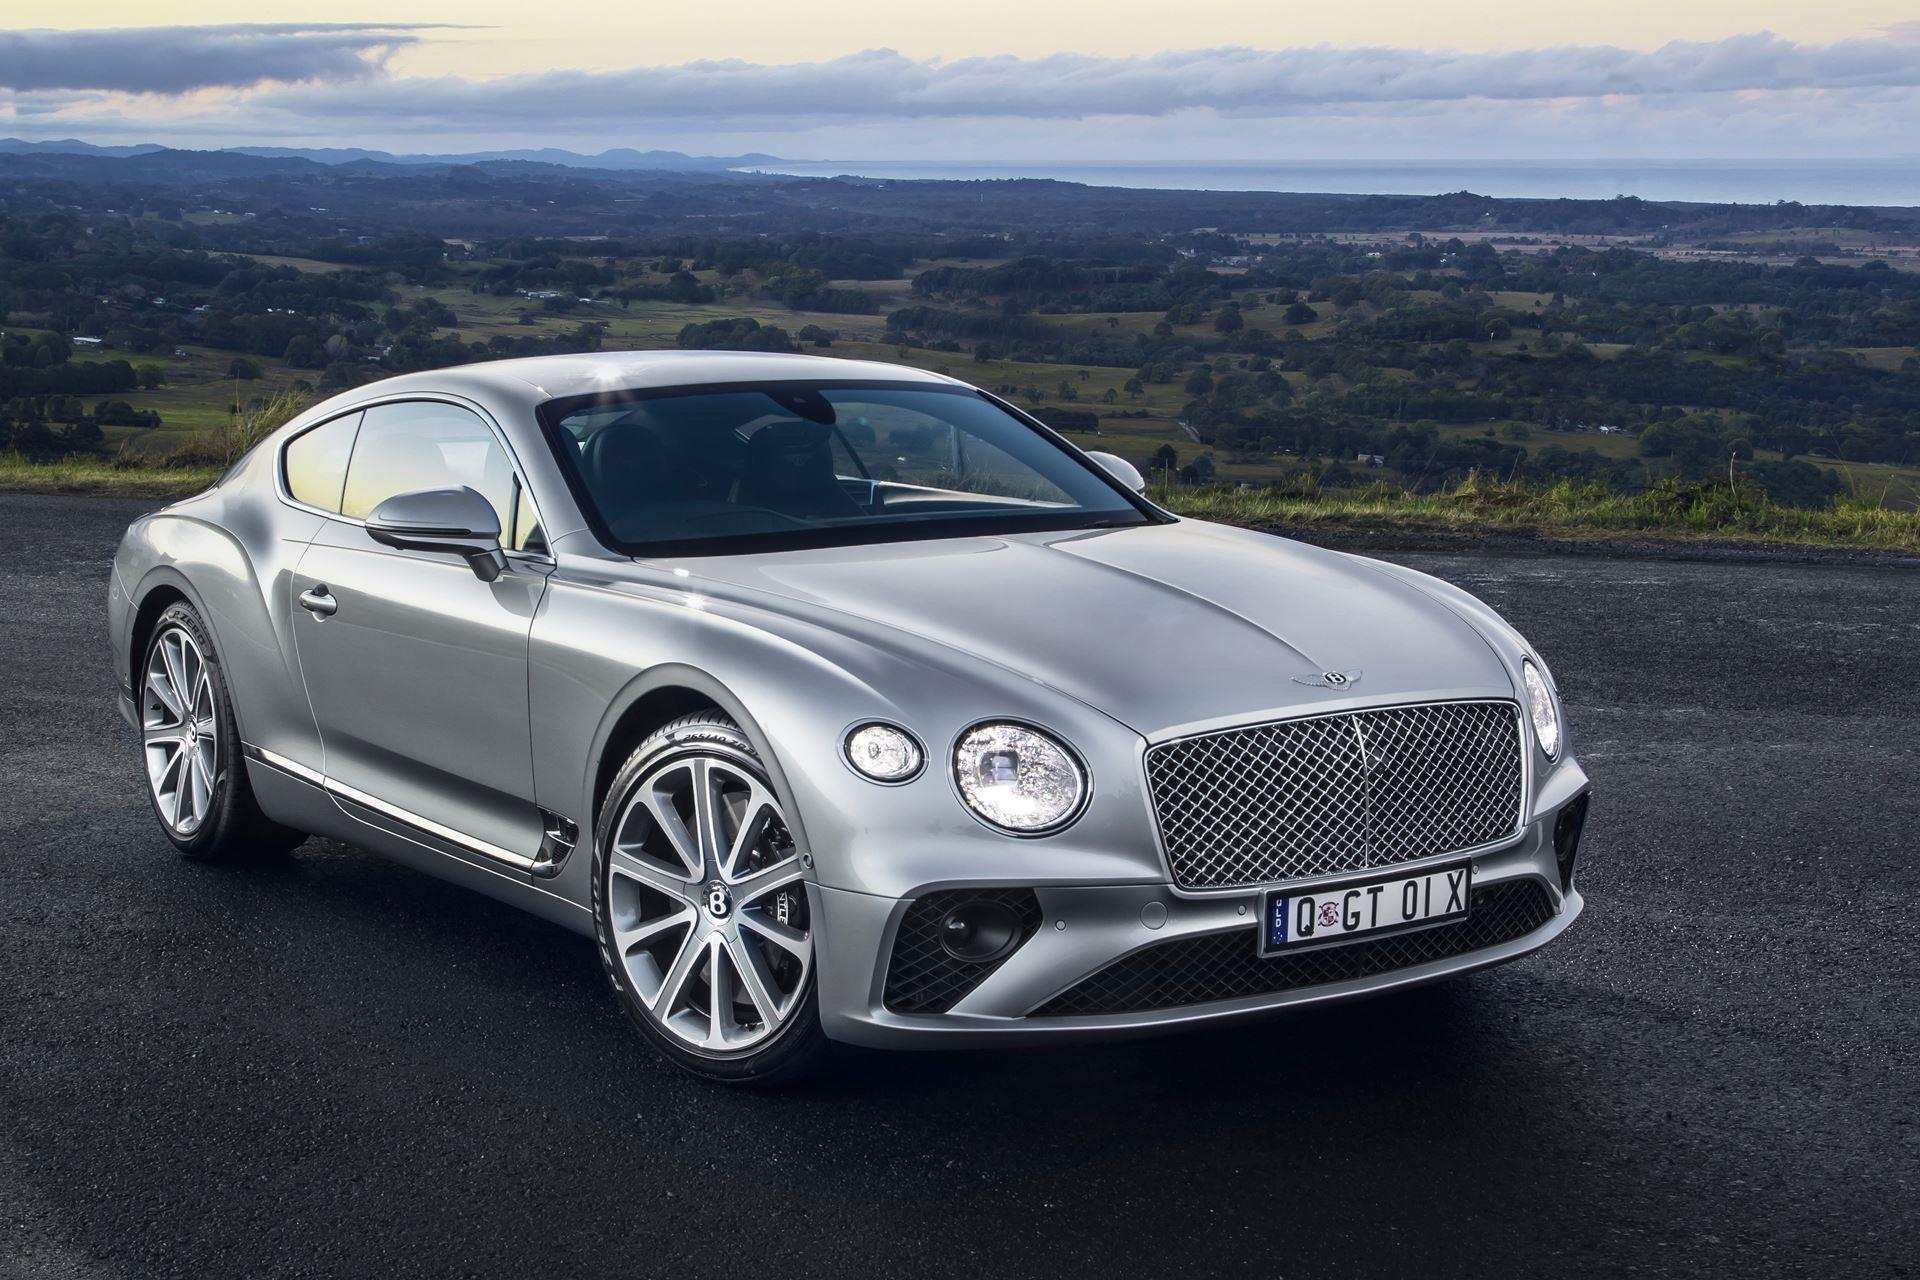 81 All New 2019 Bentley Gt V8 Reviews